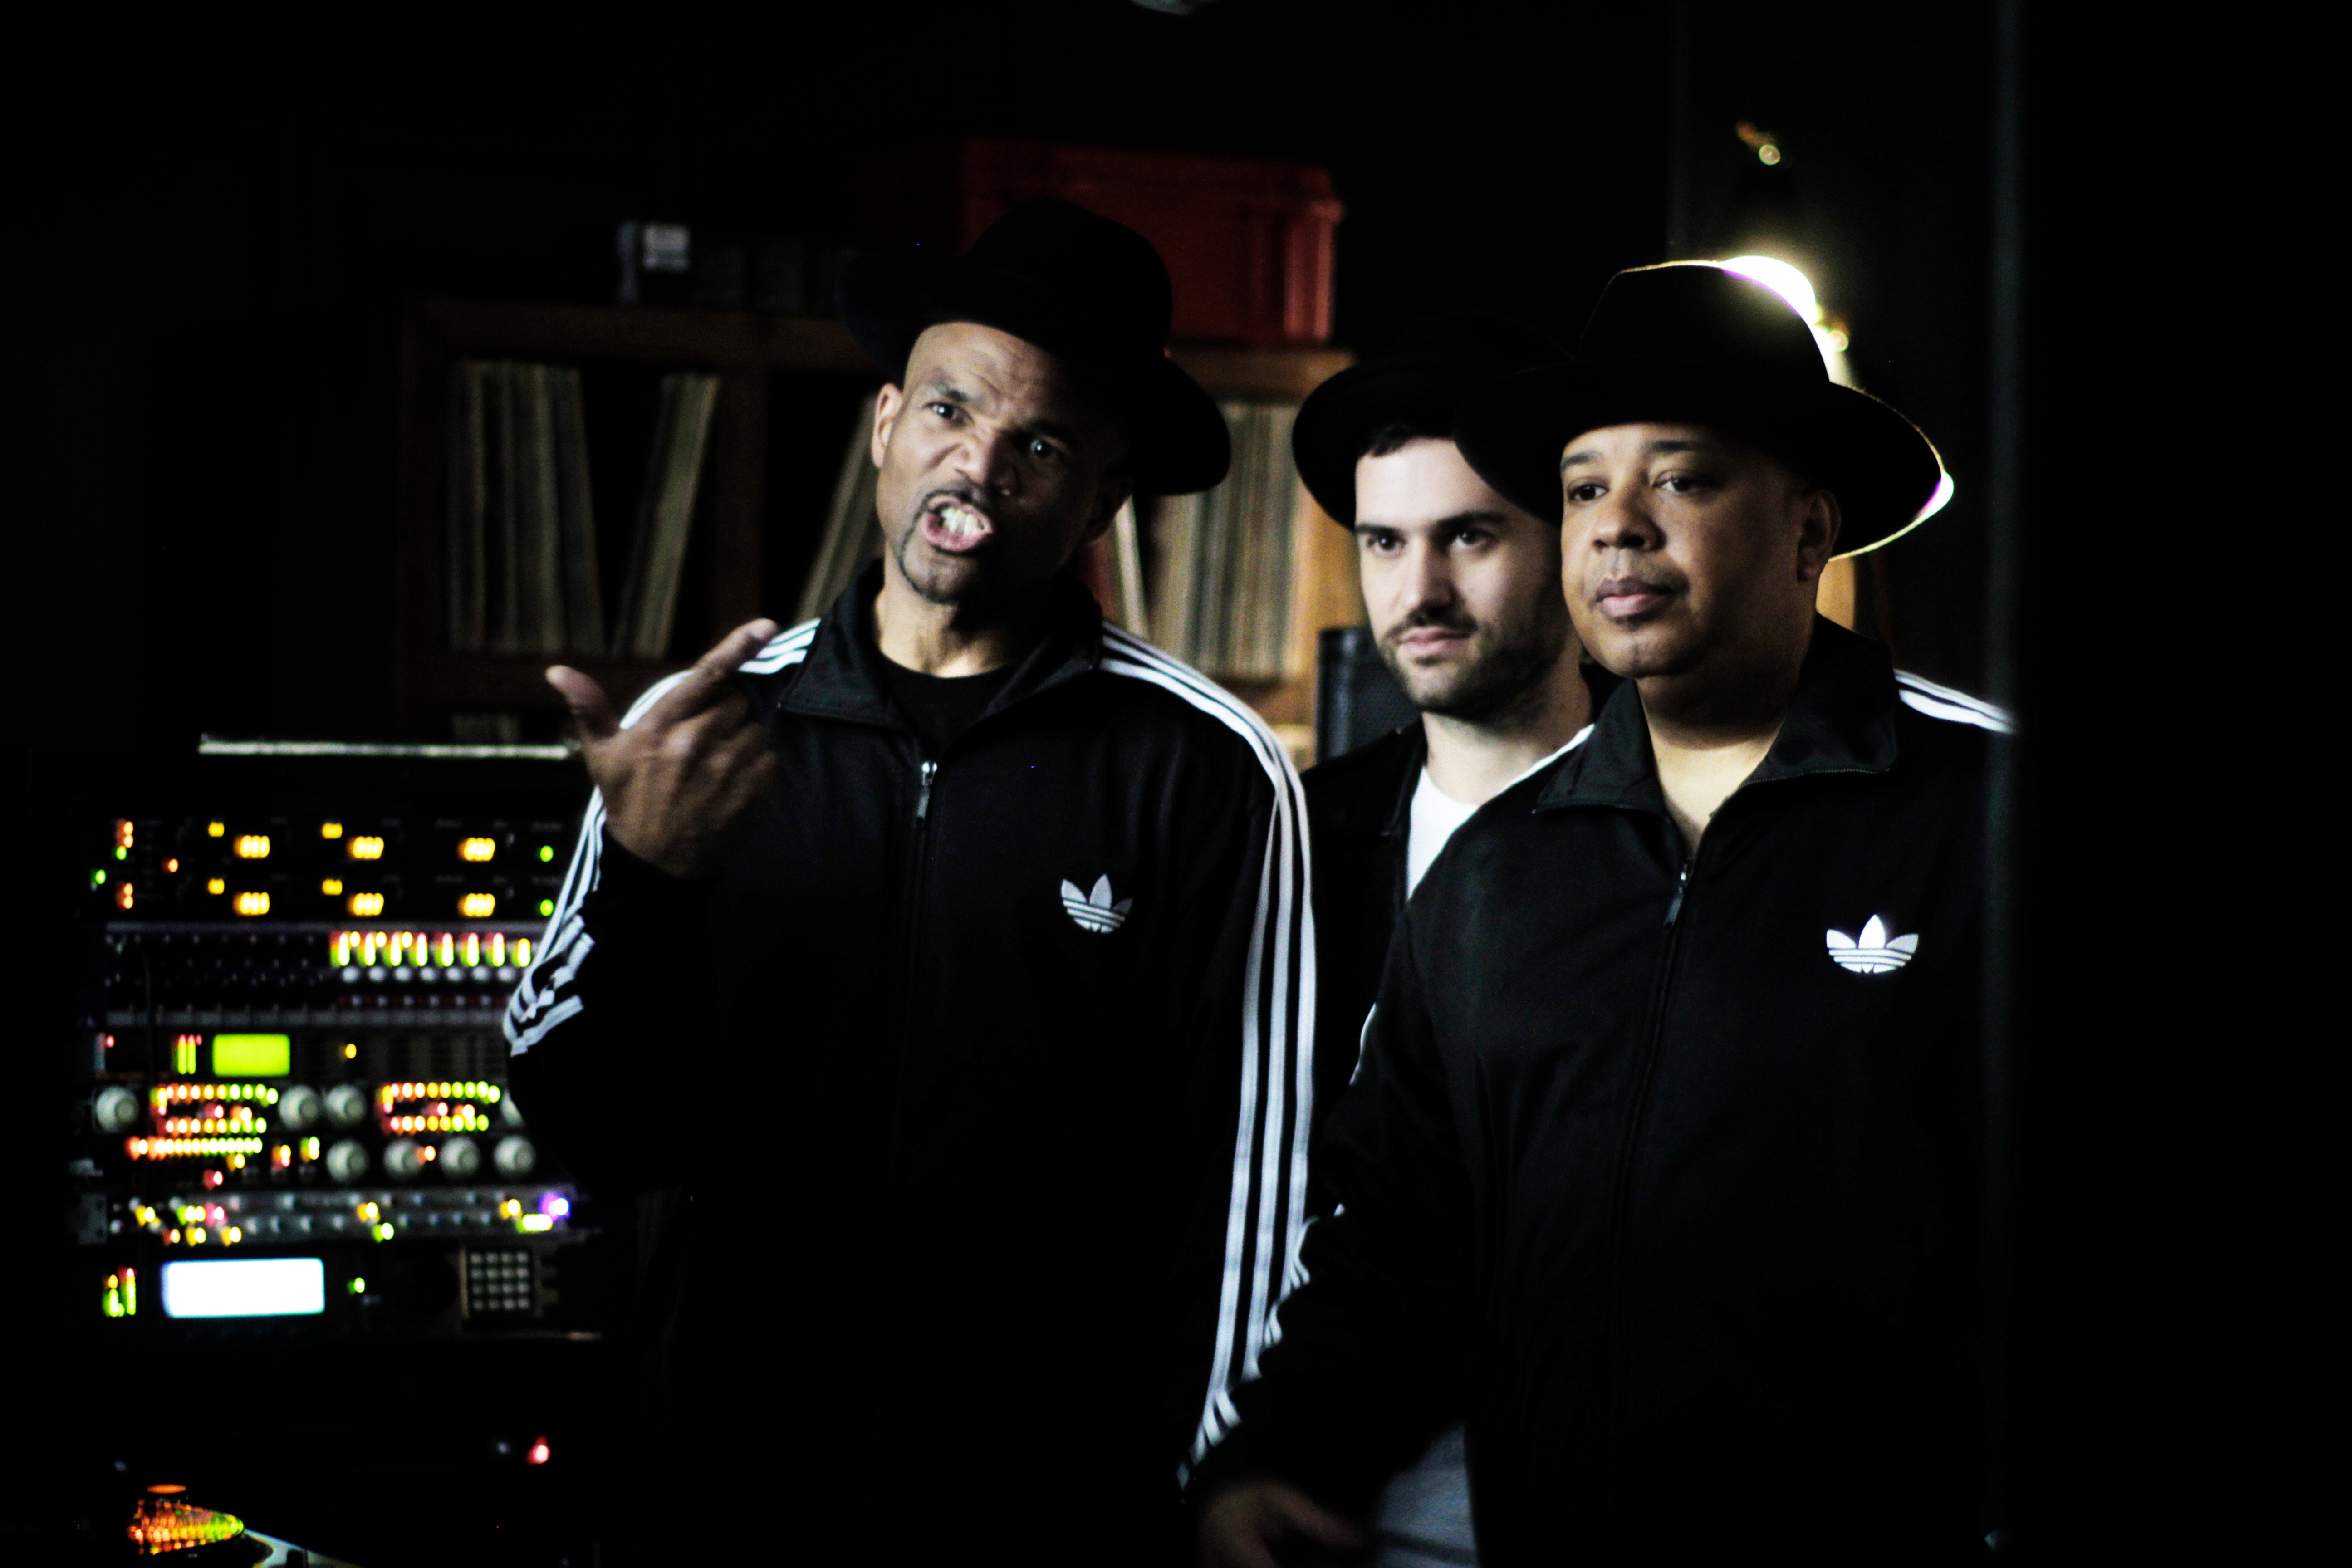 Die Hip-Hop-Legenden Run DMC und DJ-Superstar A-Trak